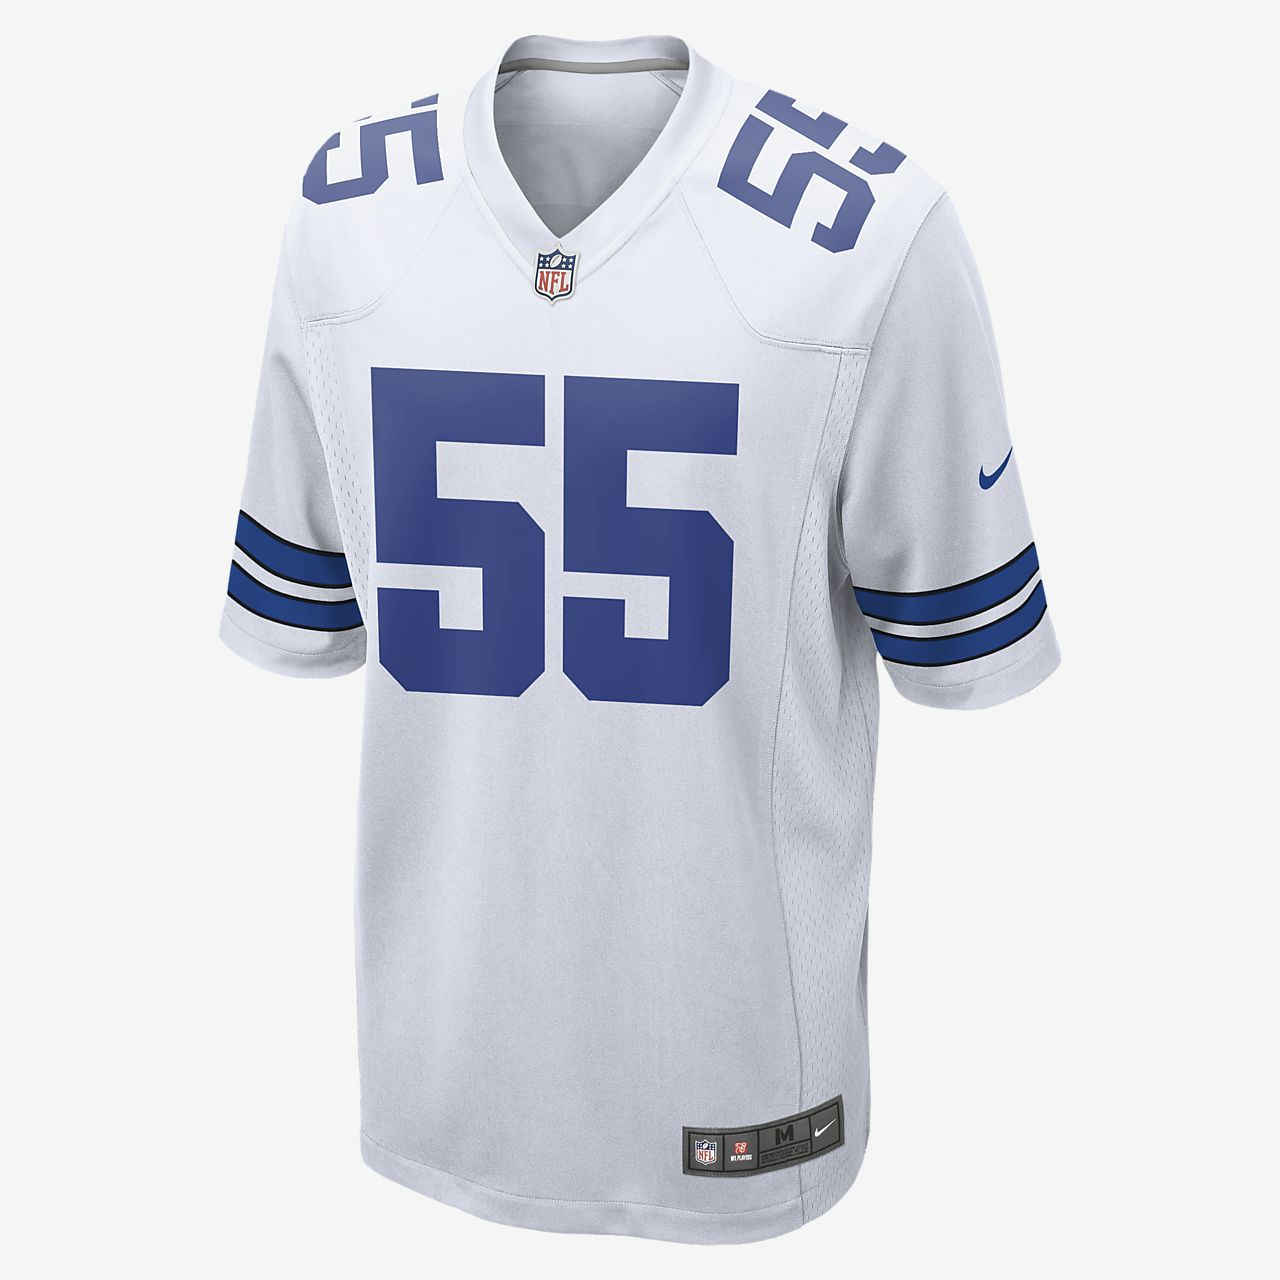 low priced 9f63b 935b0 NFL Dallas Cowboys Game (Leighton Vander Esch) Men's Football Jersey